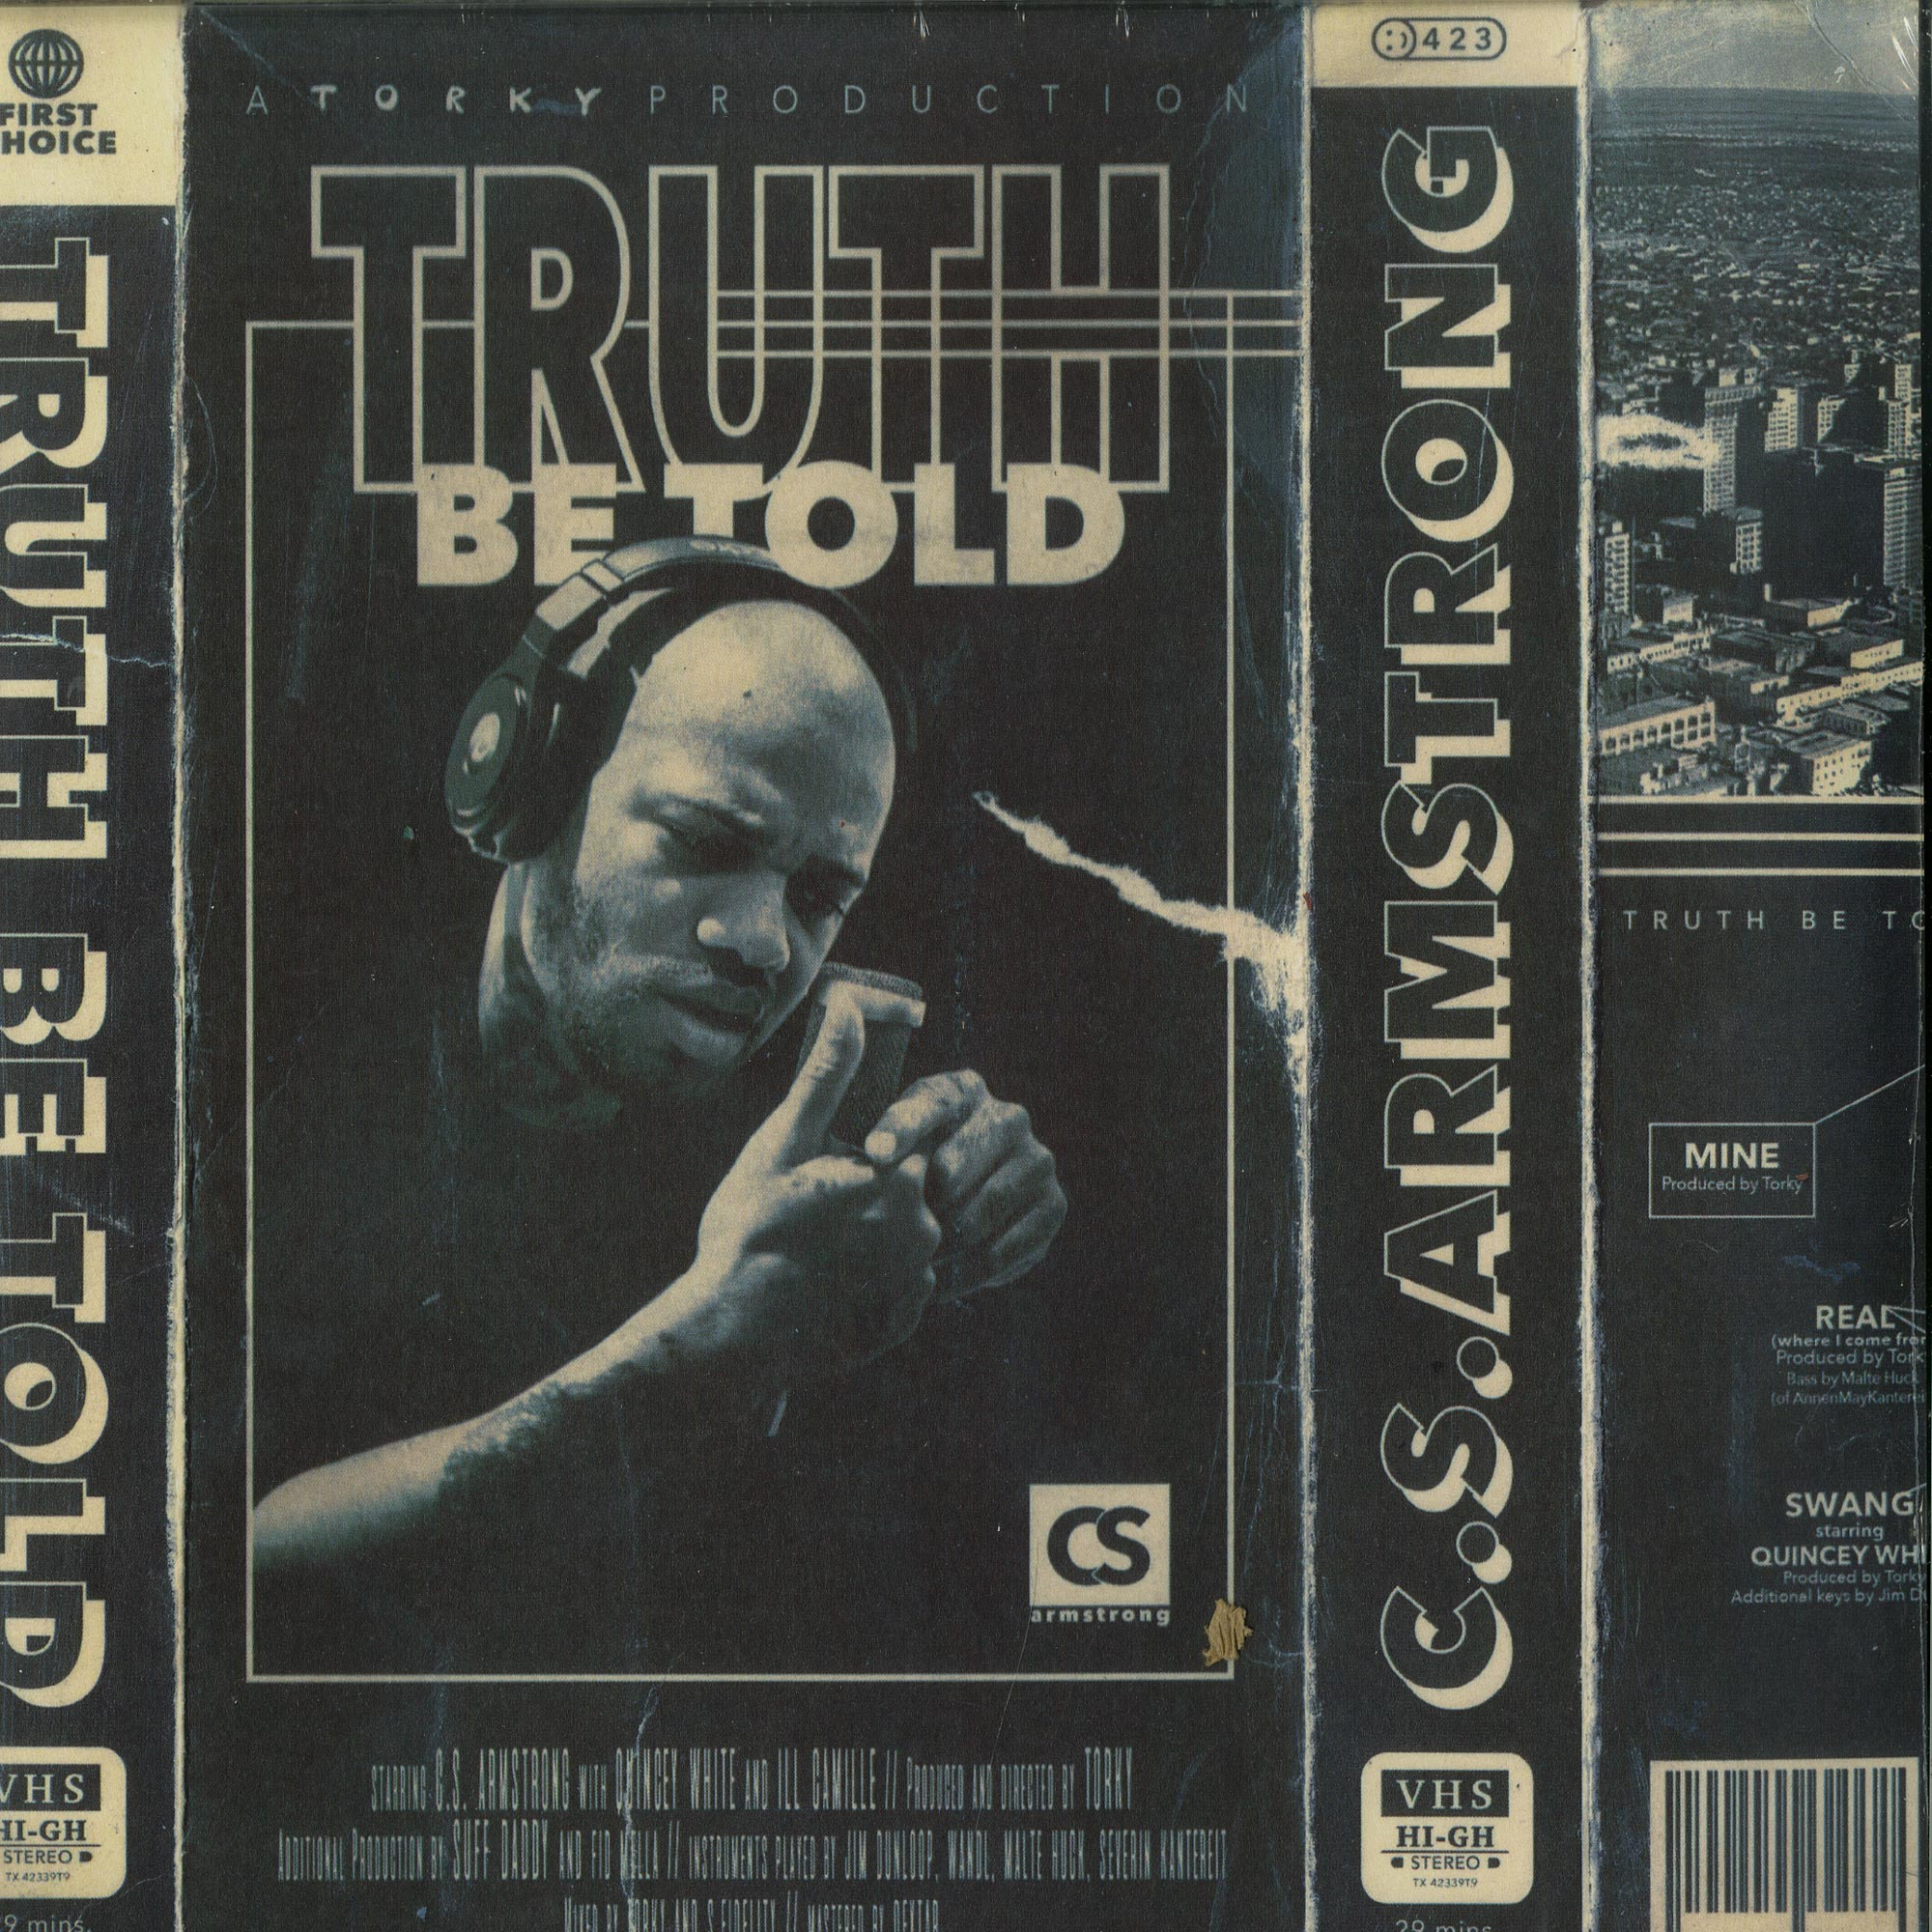 C.S.Armstrong - TRUTH BE TOLD